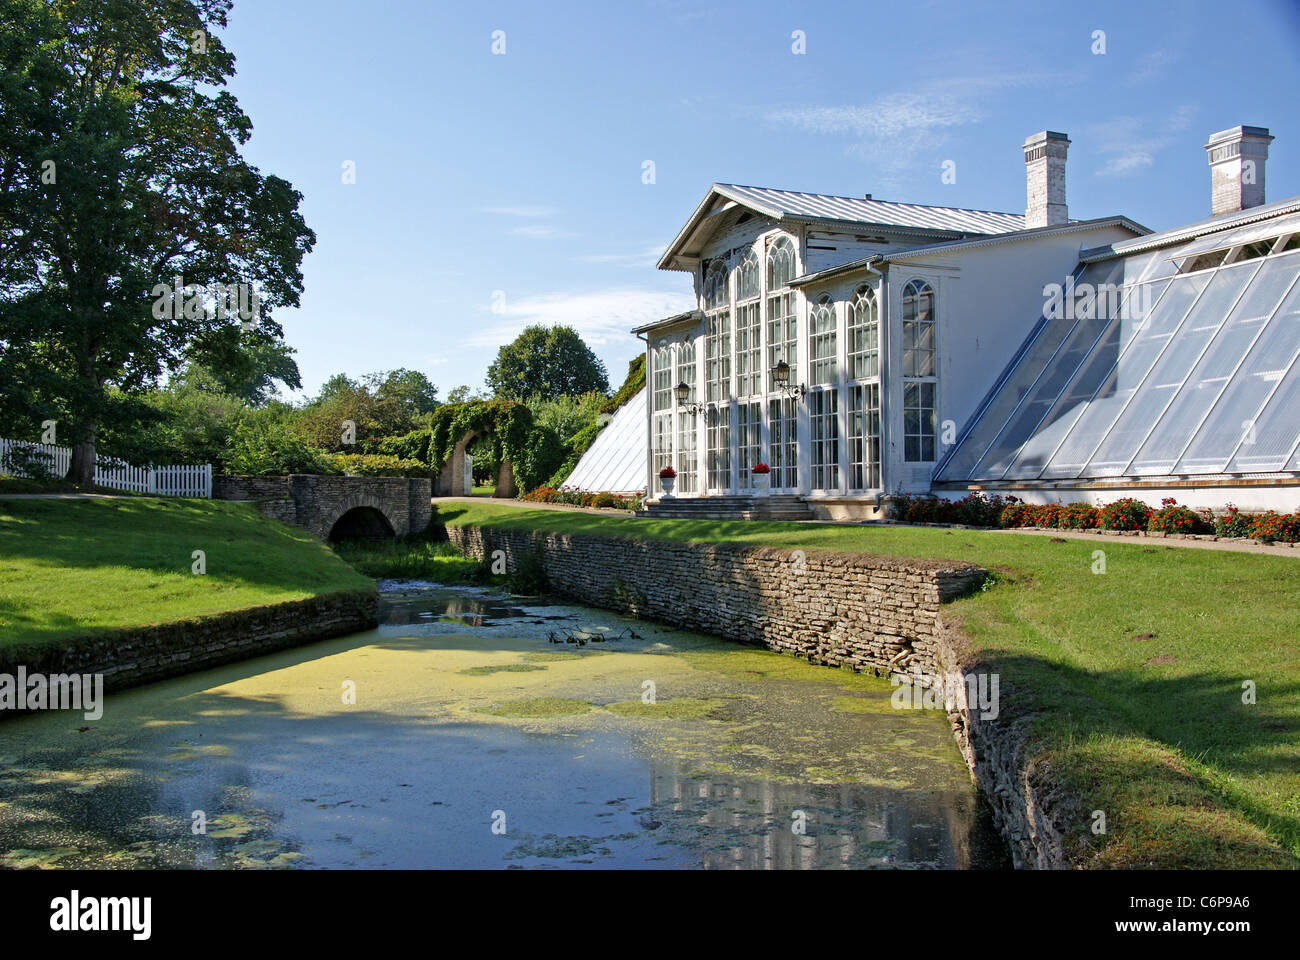 The house and the channel - Stock Image